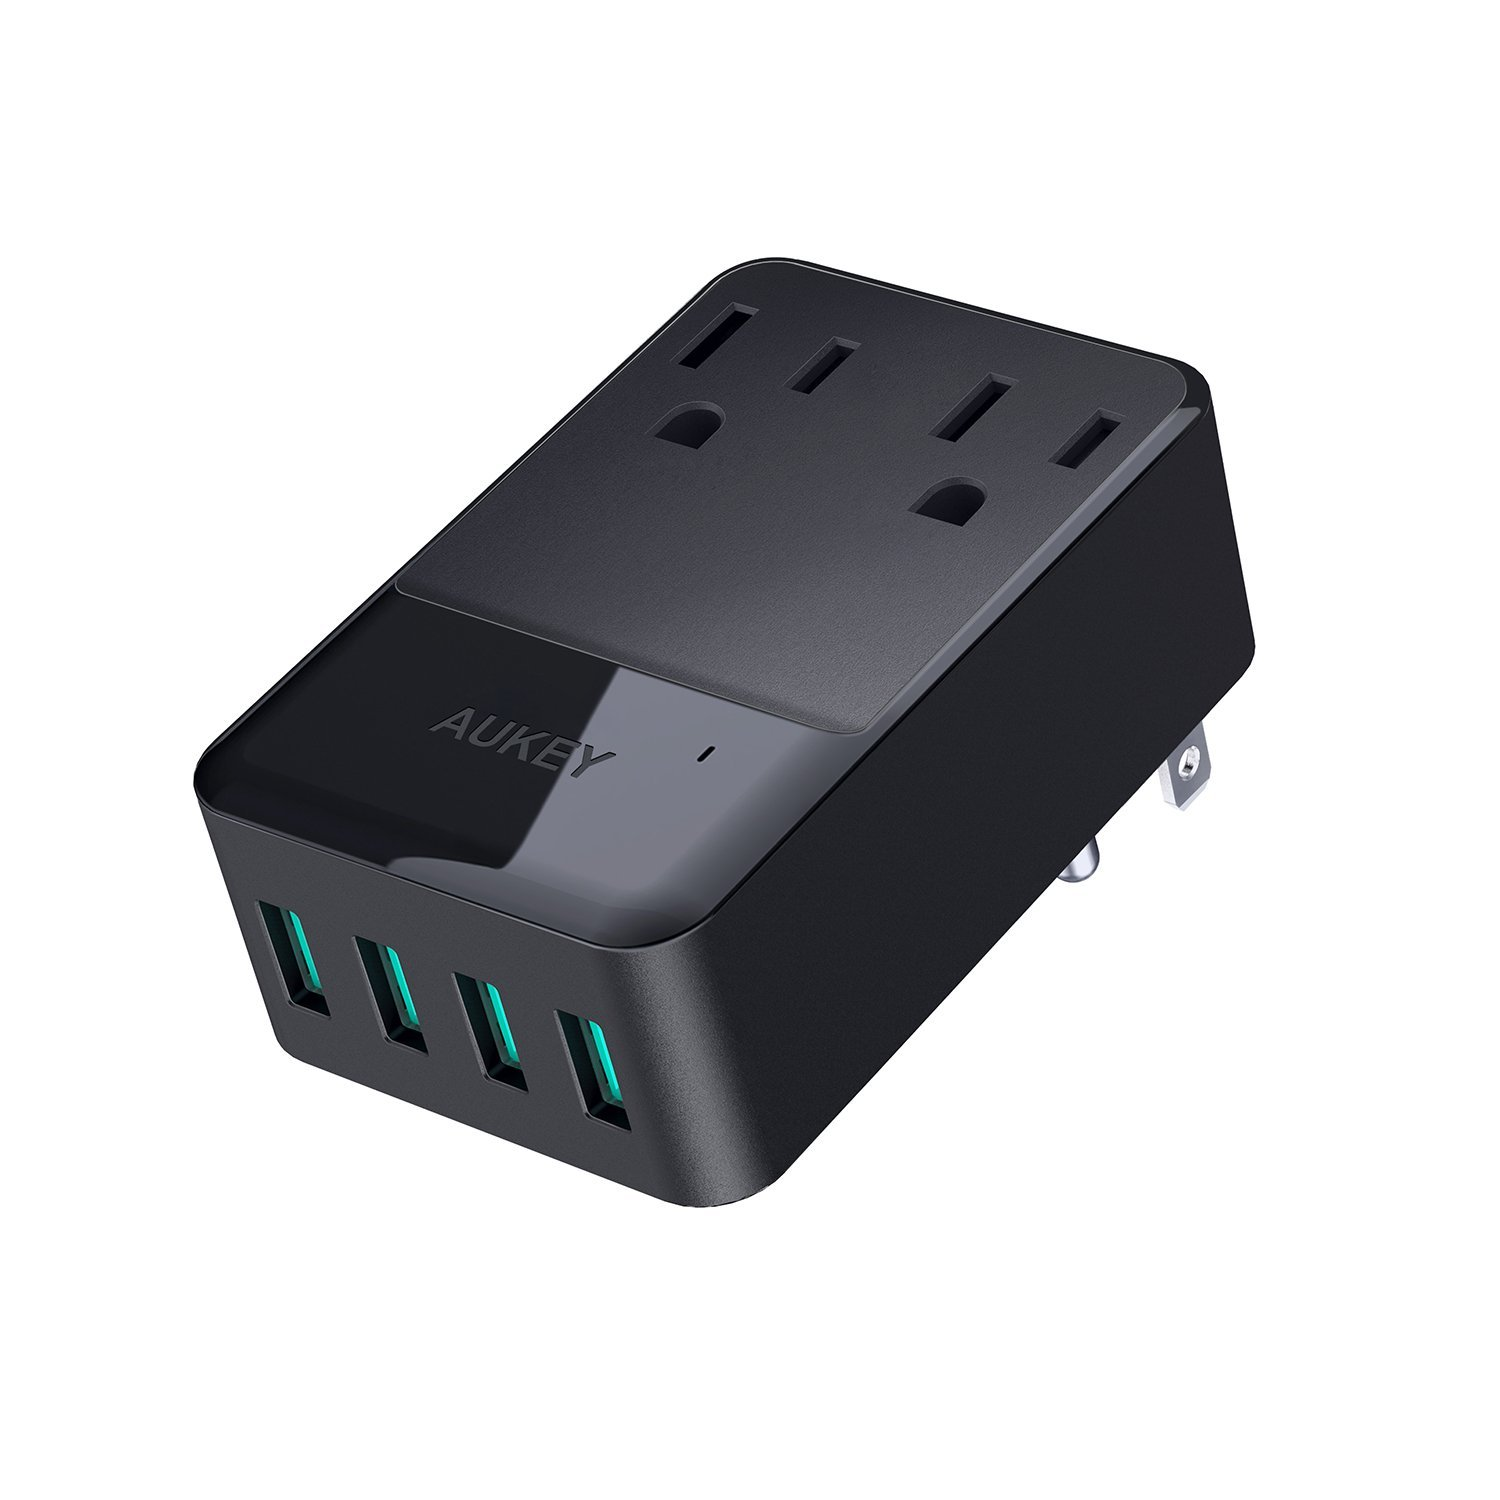 Use the code below to push the price of the [Aukey Power Strip](https://www.amazon.com/AUKEY-Outlets-Charger-Smartphones-Certified/dp/B01NALRJE2?tag=toolstoysdeals-20) down to one of the lowest prices we've seen.